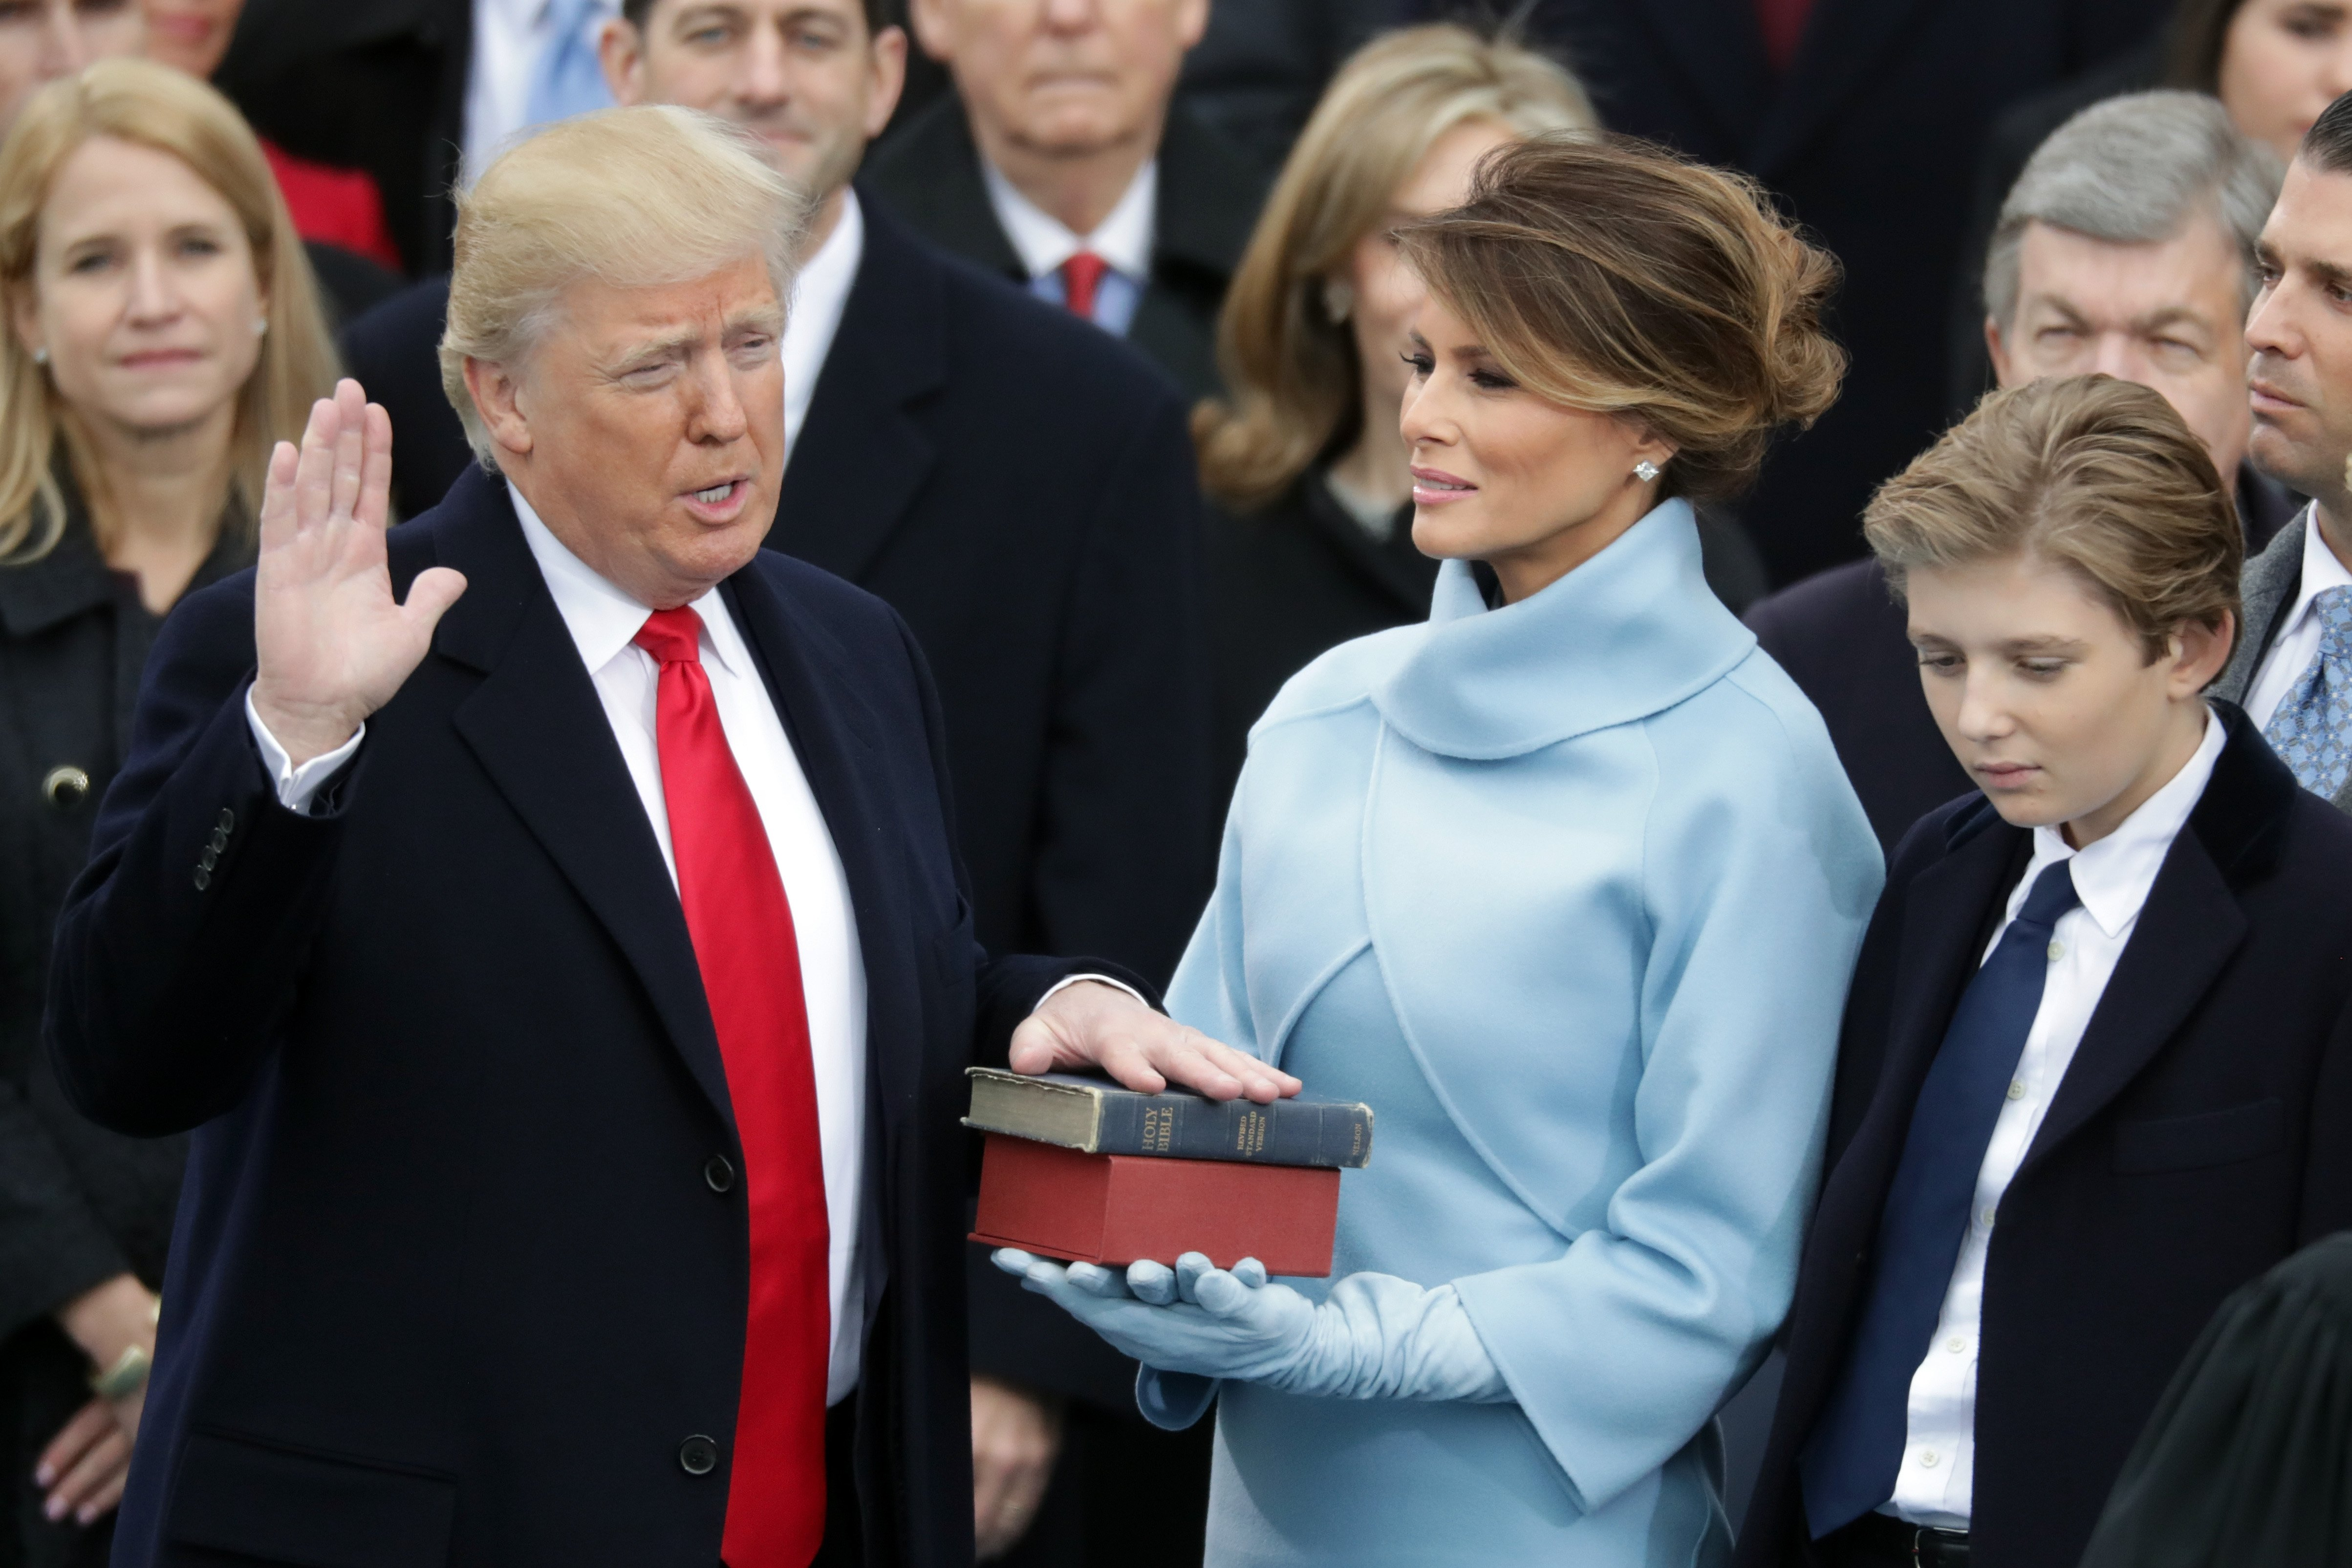 President Donald Trump takes the oath of office as his wife Melania Trump holds the bible and his son Barron Trump looks on, on the West Front of the U.S. Capitol on January 20, 2017 in Washington, DC